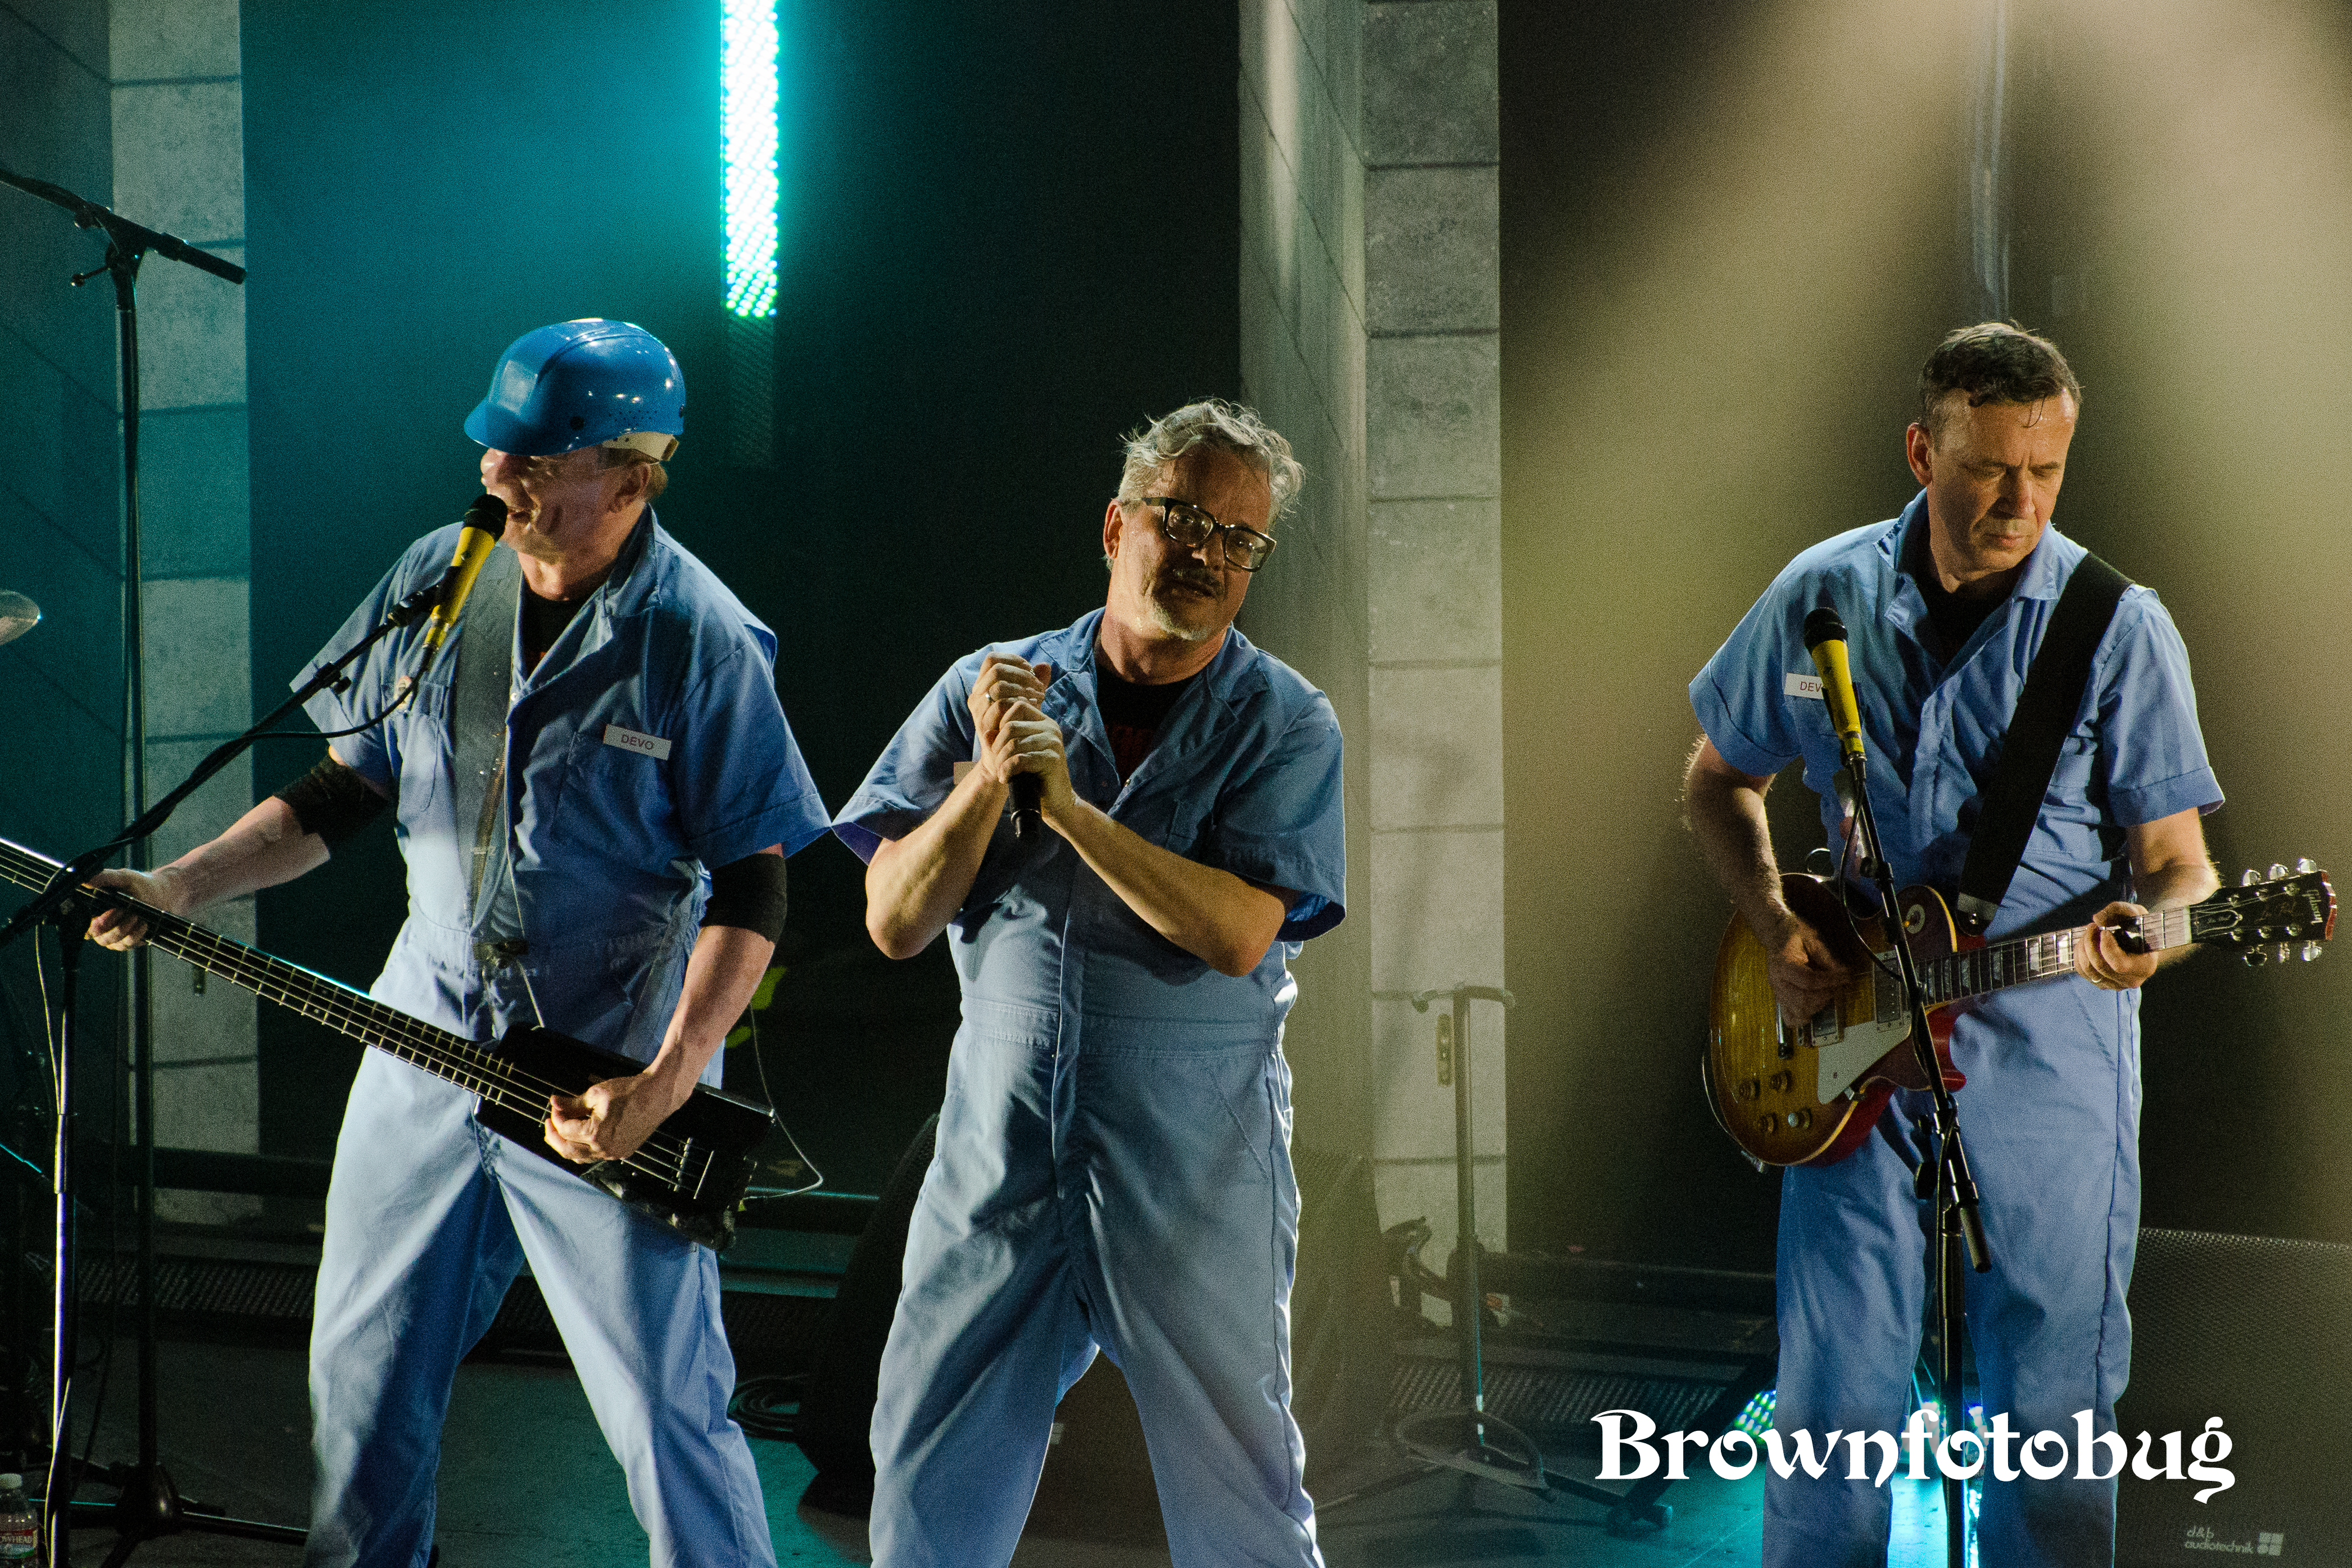 DEVO at The Neptune (Photo by Arlene Brown)